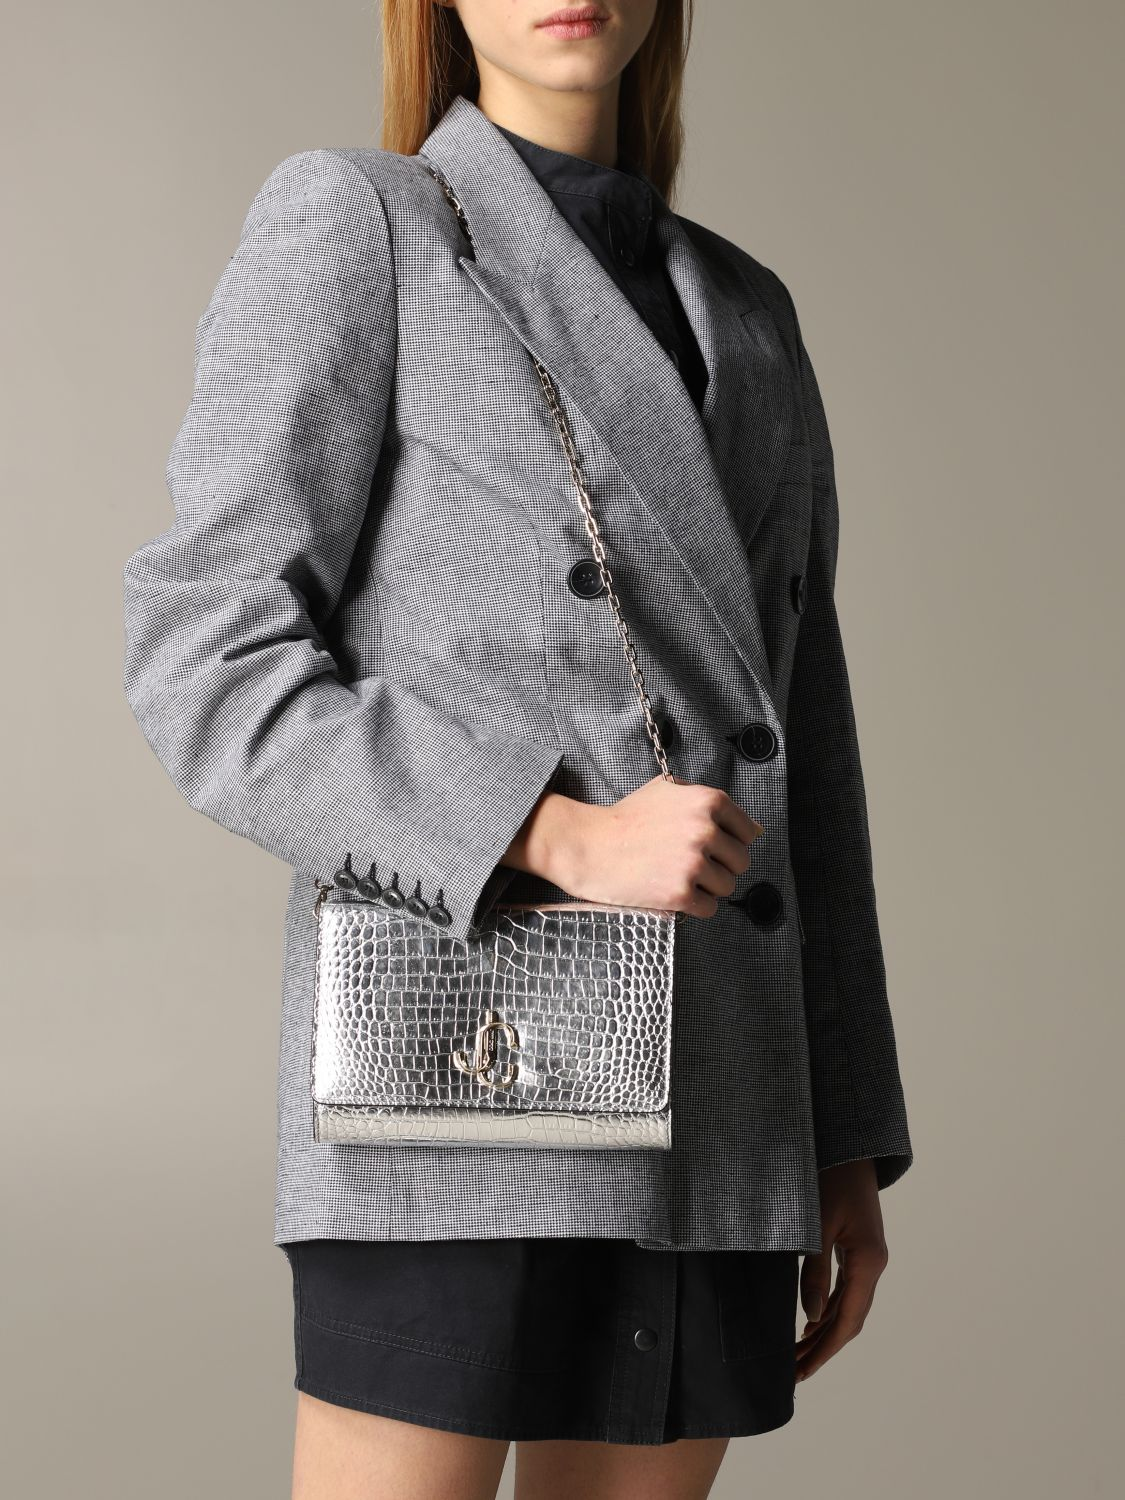 Jimmy Choo bag in smooth leather with logo silver 2